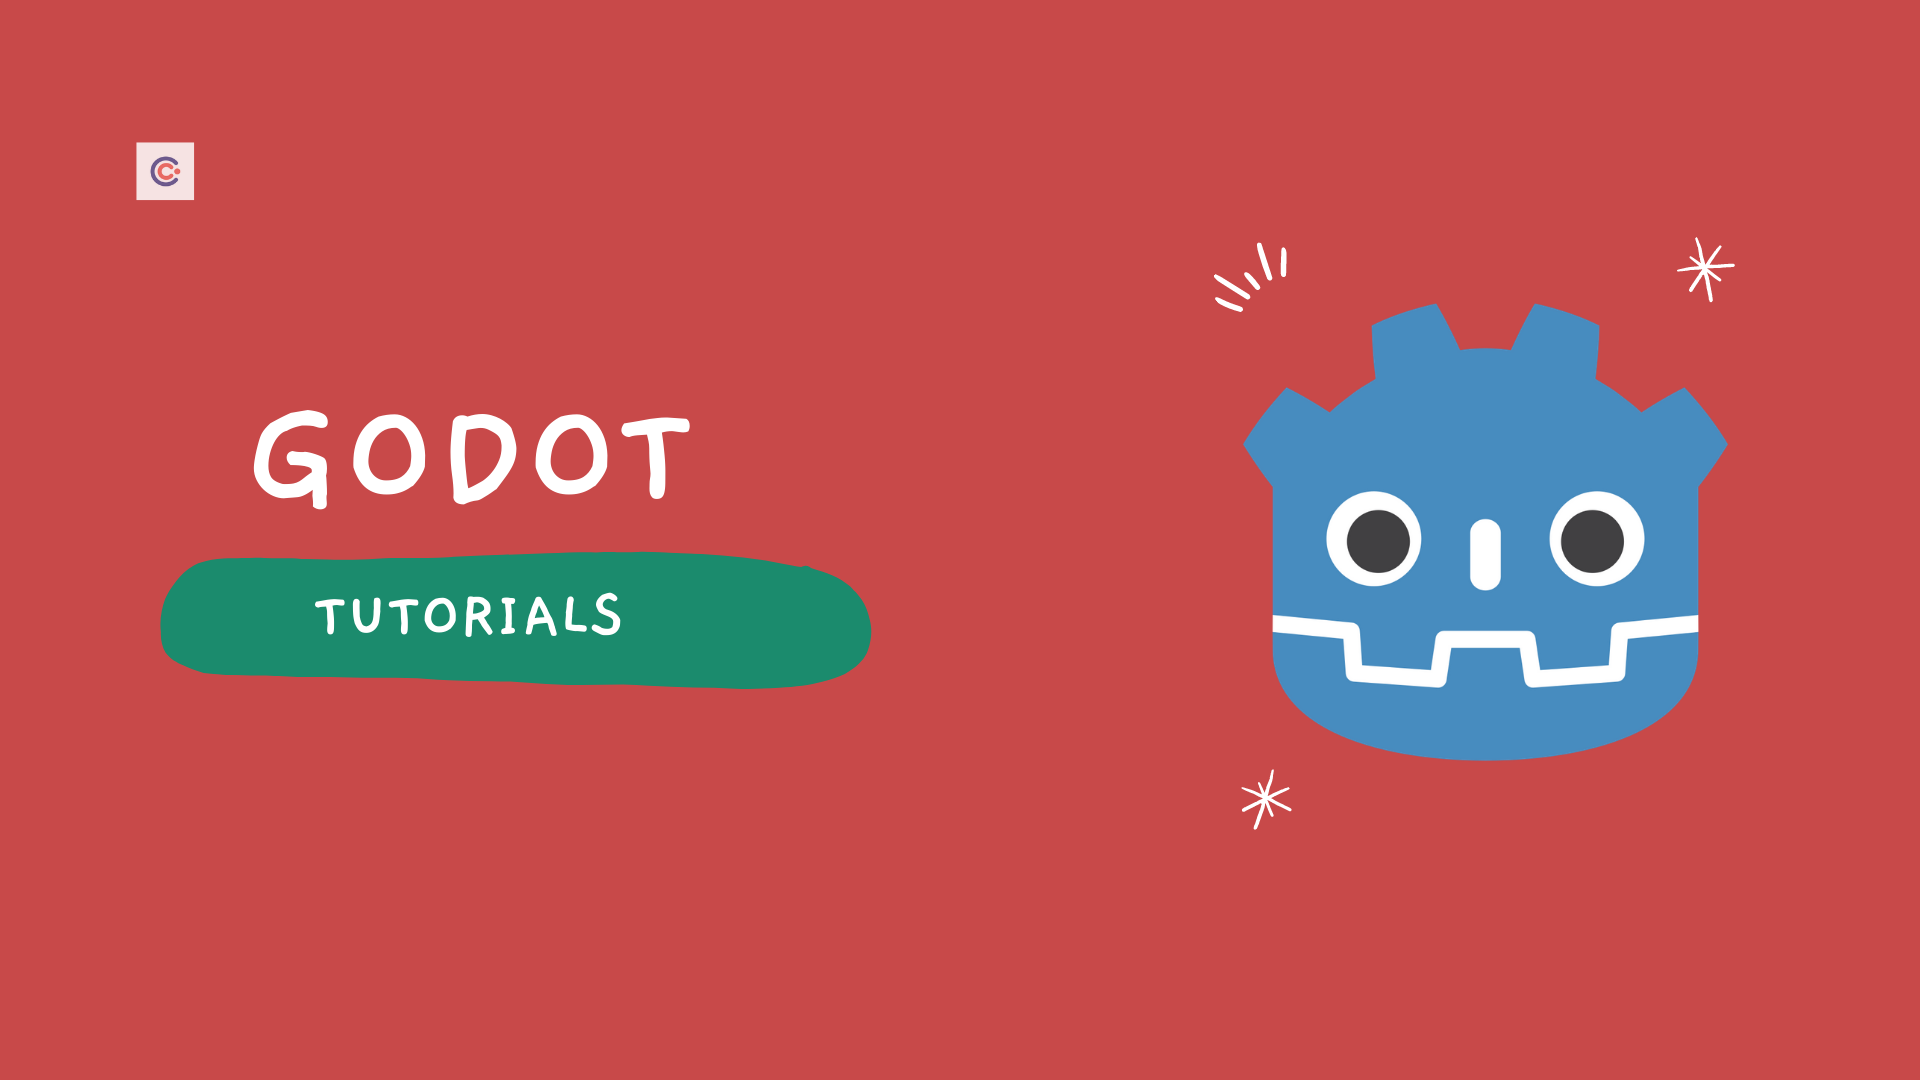 5 Best Godot Tutorials - Learn Godot Online